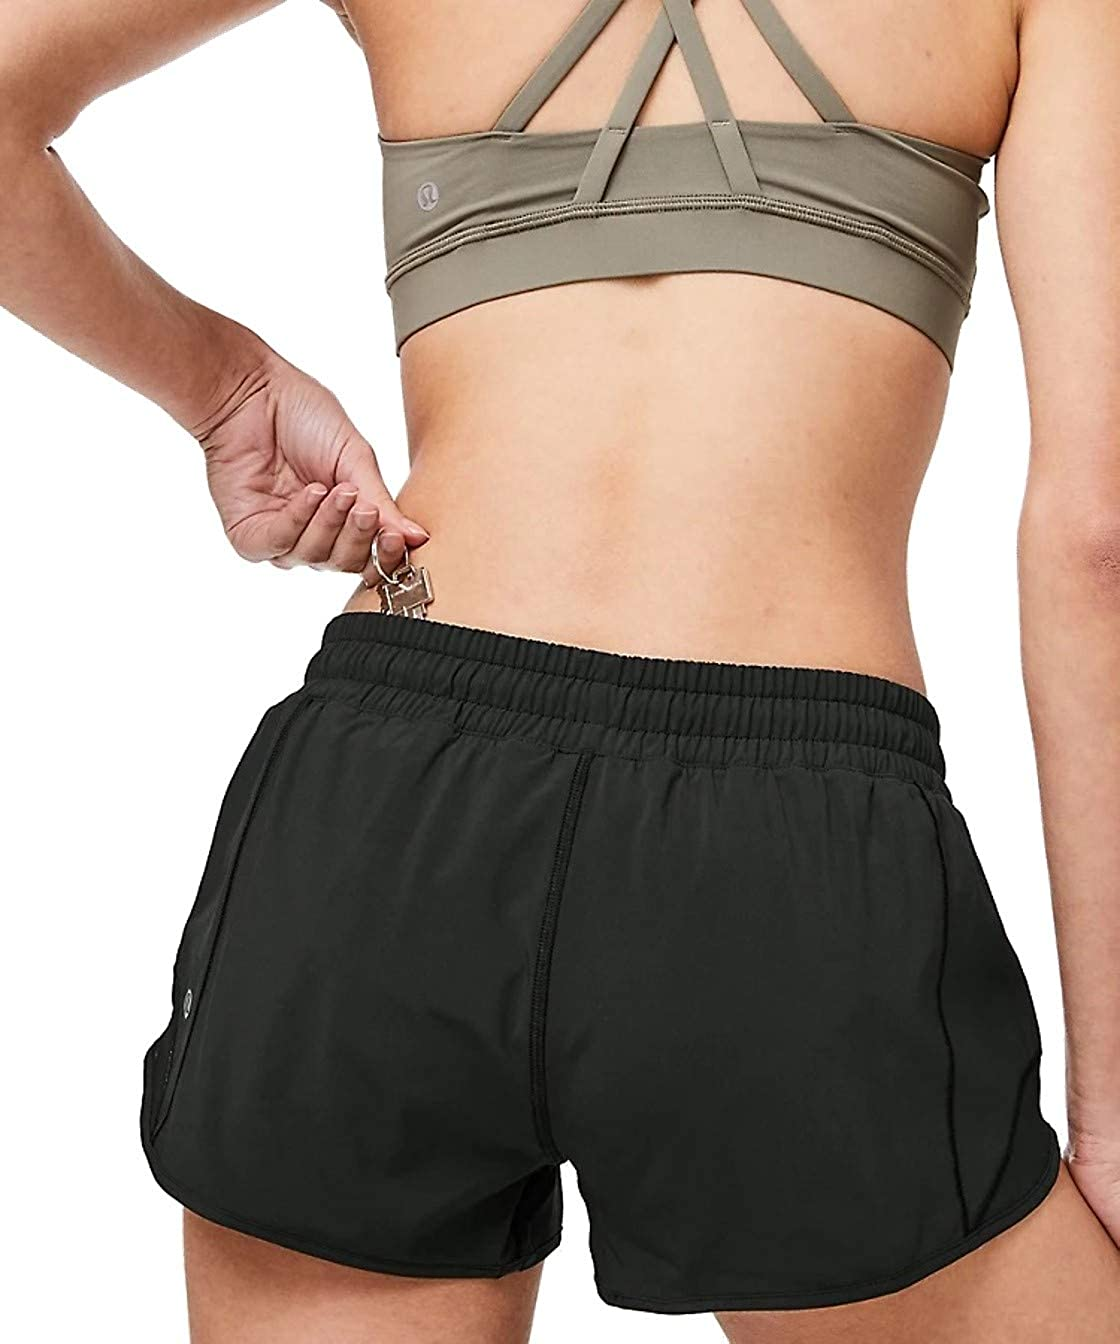 Limited time cheap sale LULULEMON Hotty Large discharge sale Hot Short 2.5